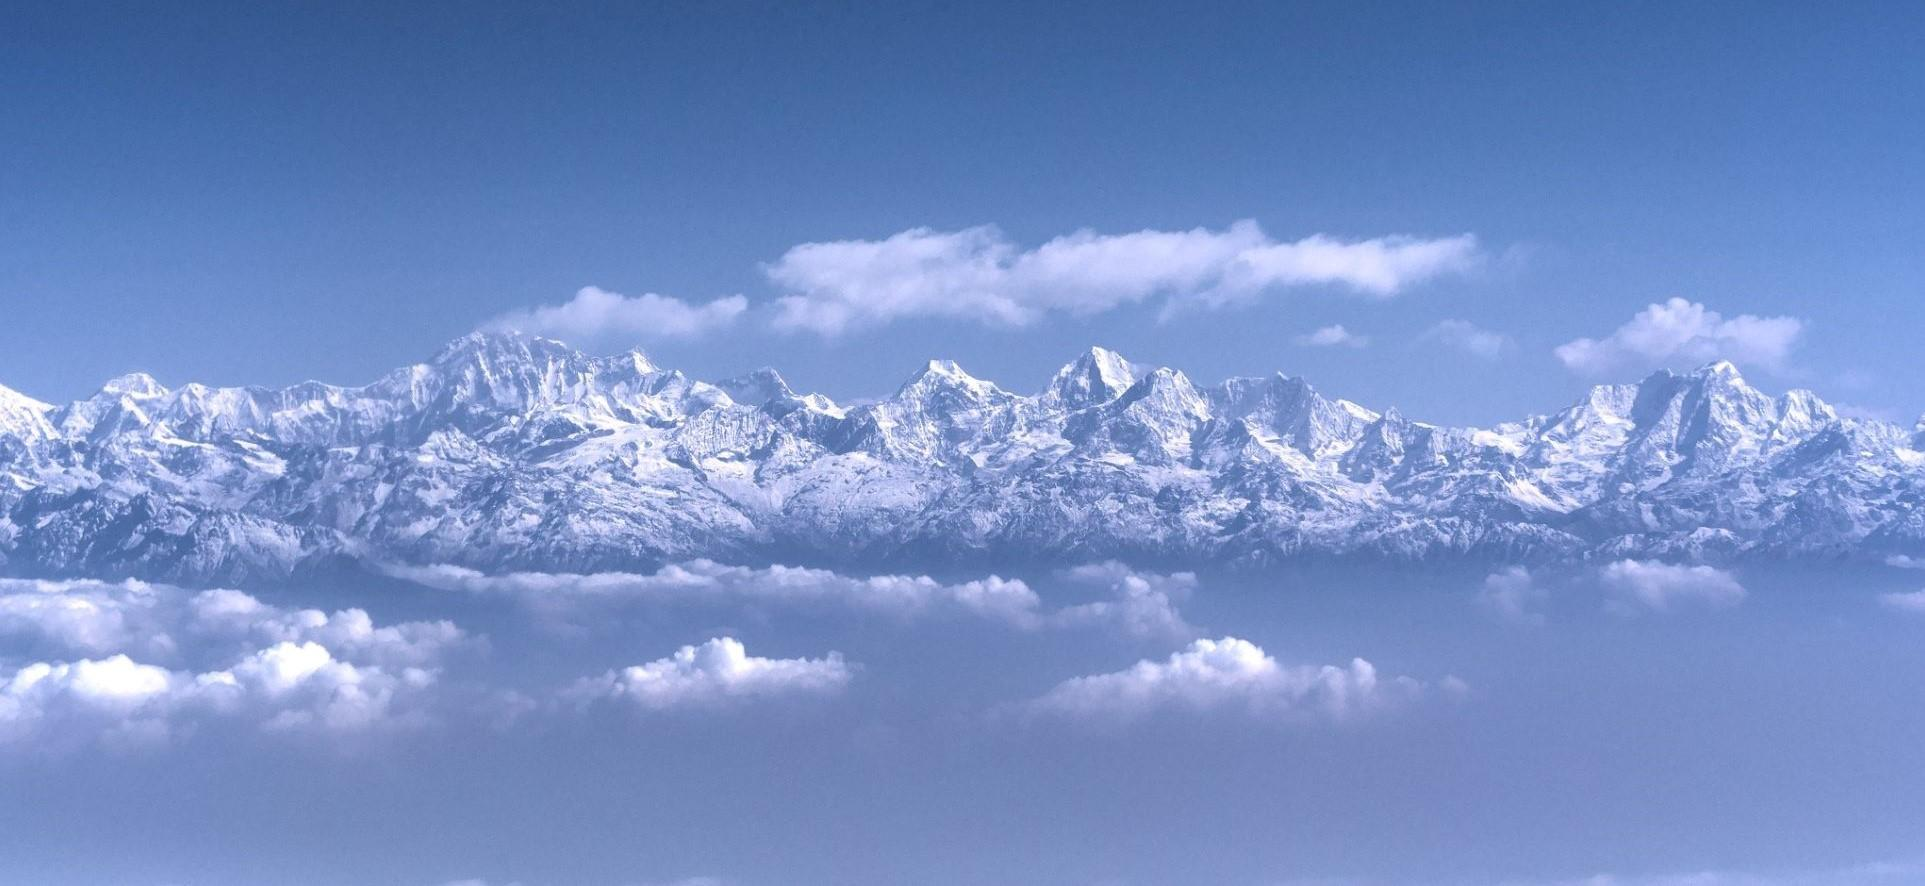 Image of the Himalayan mountains above the clouds